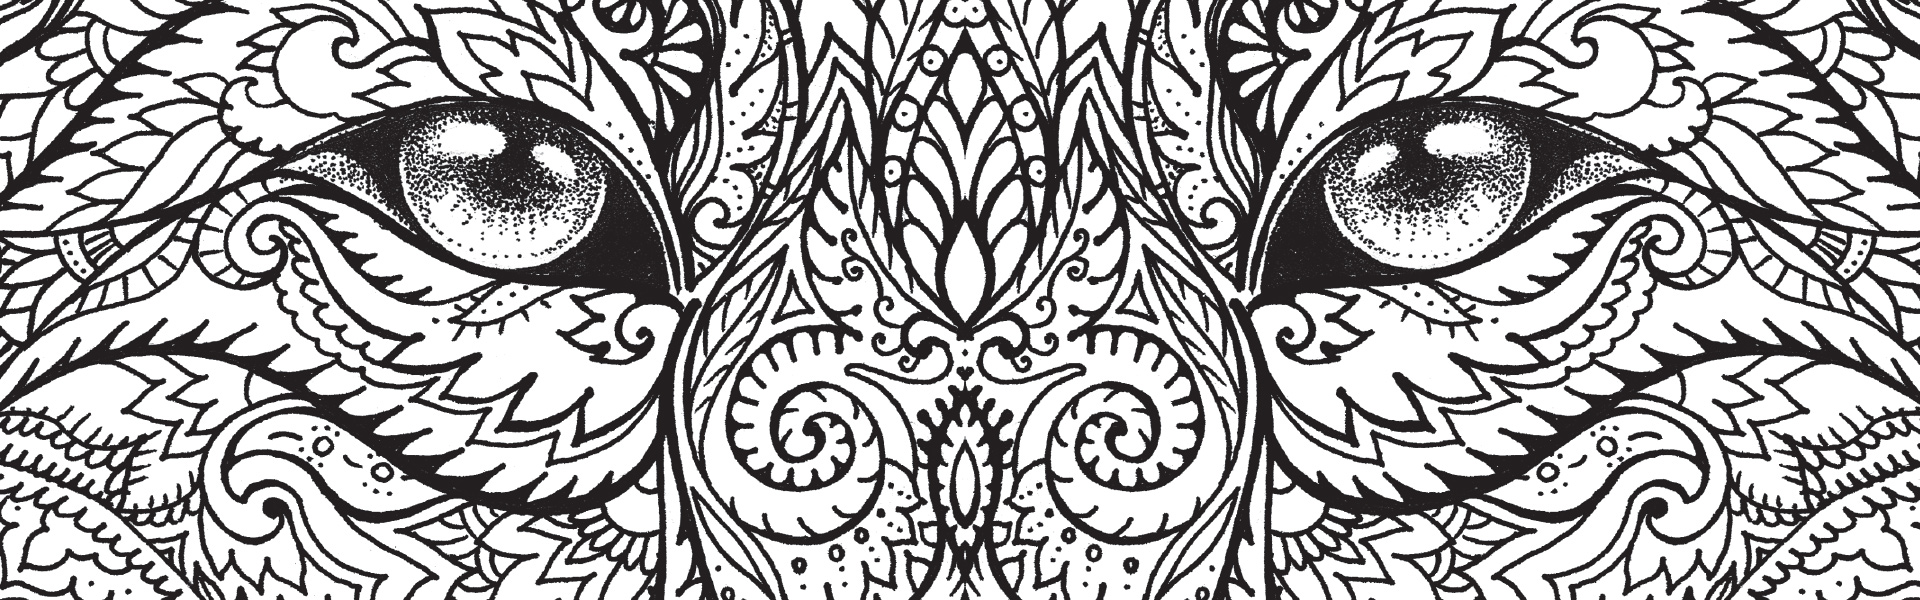 Jungle book colouring in pictures - The Macmillan Jungle Book Colouring Book Free Wolf Pattern Download